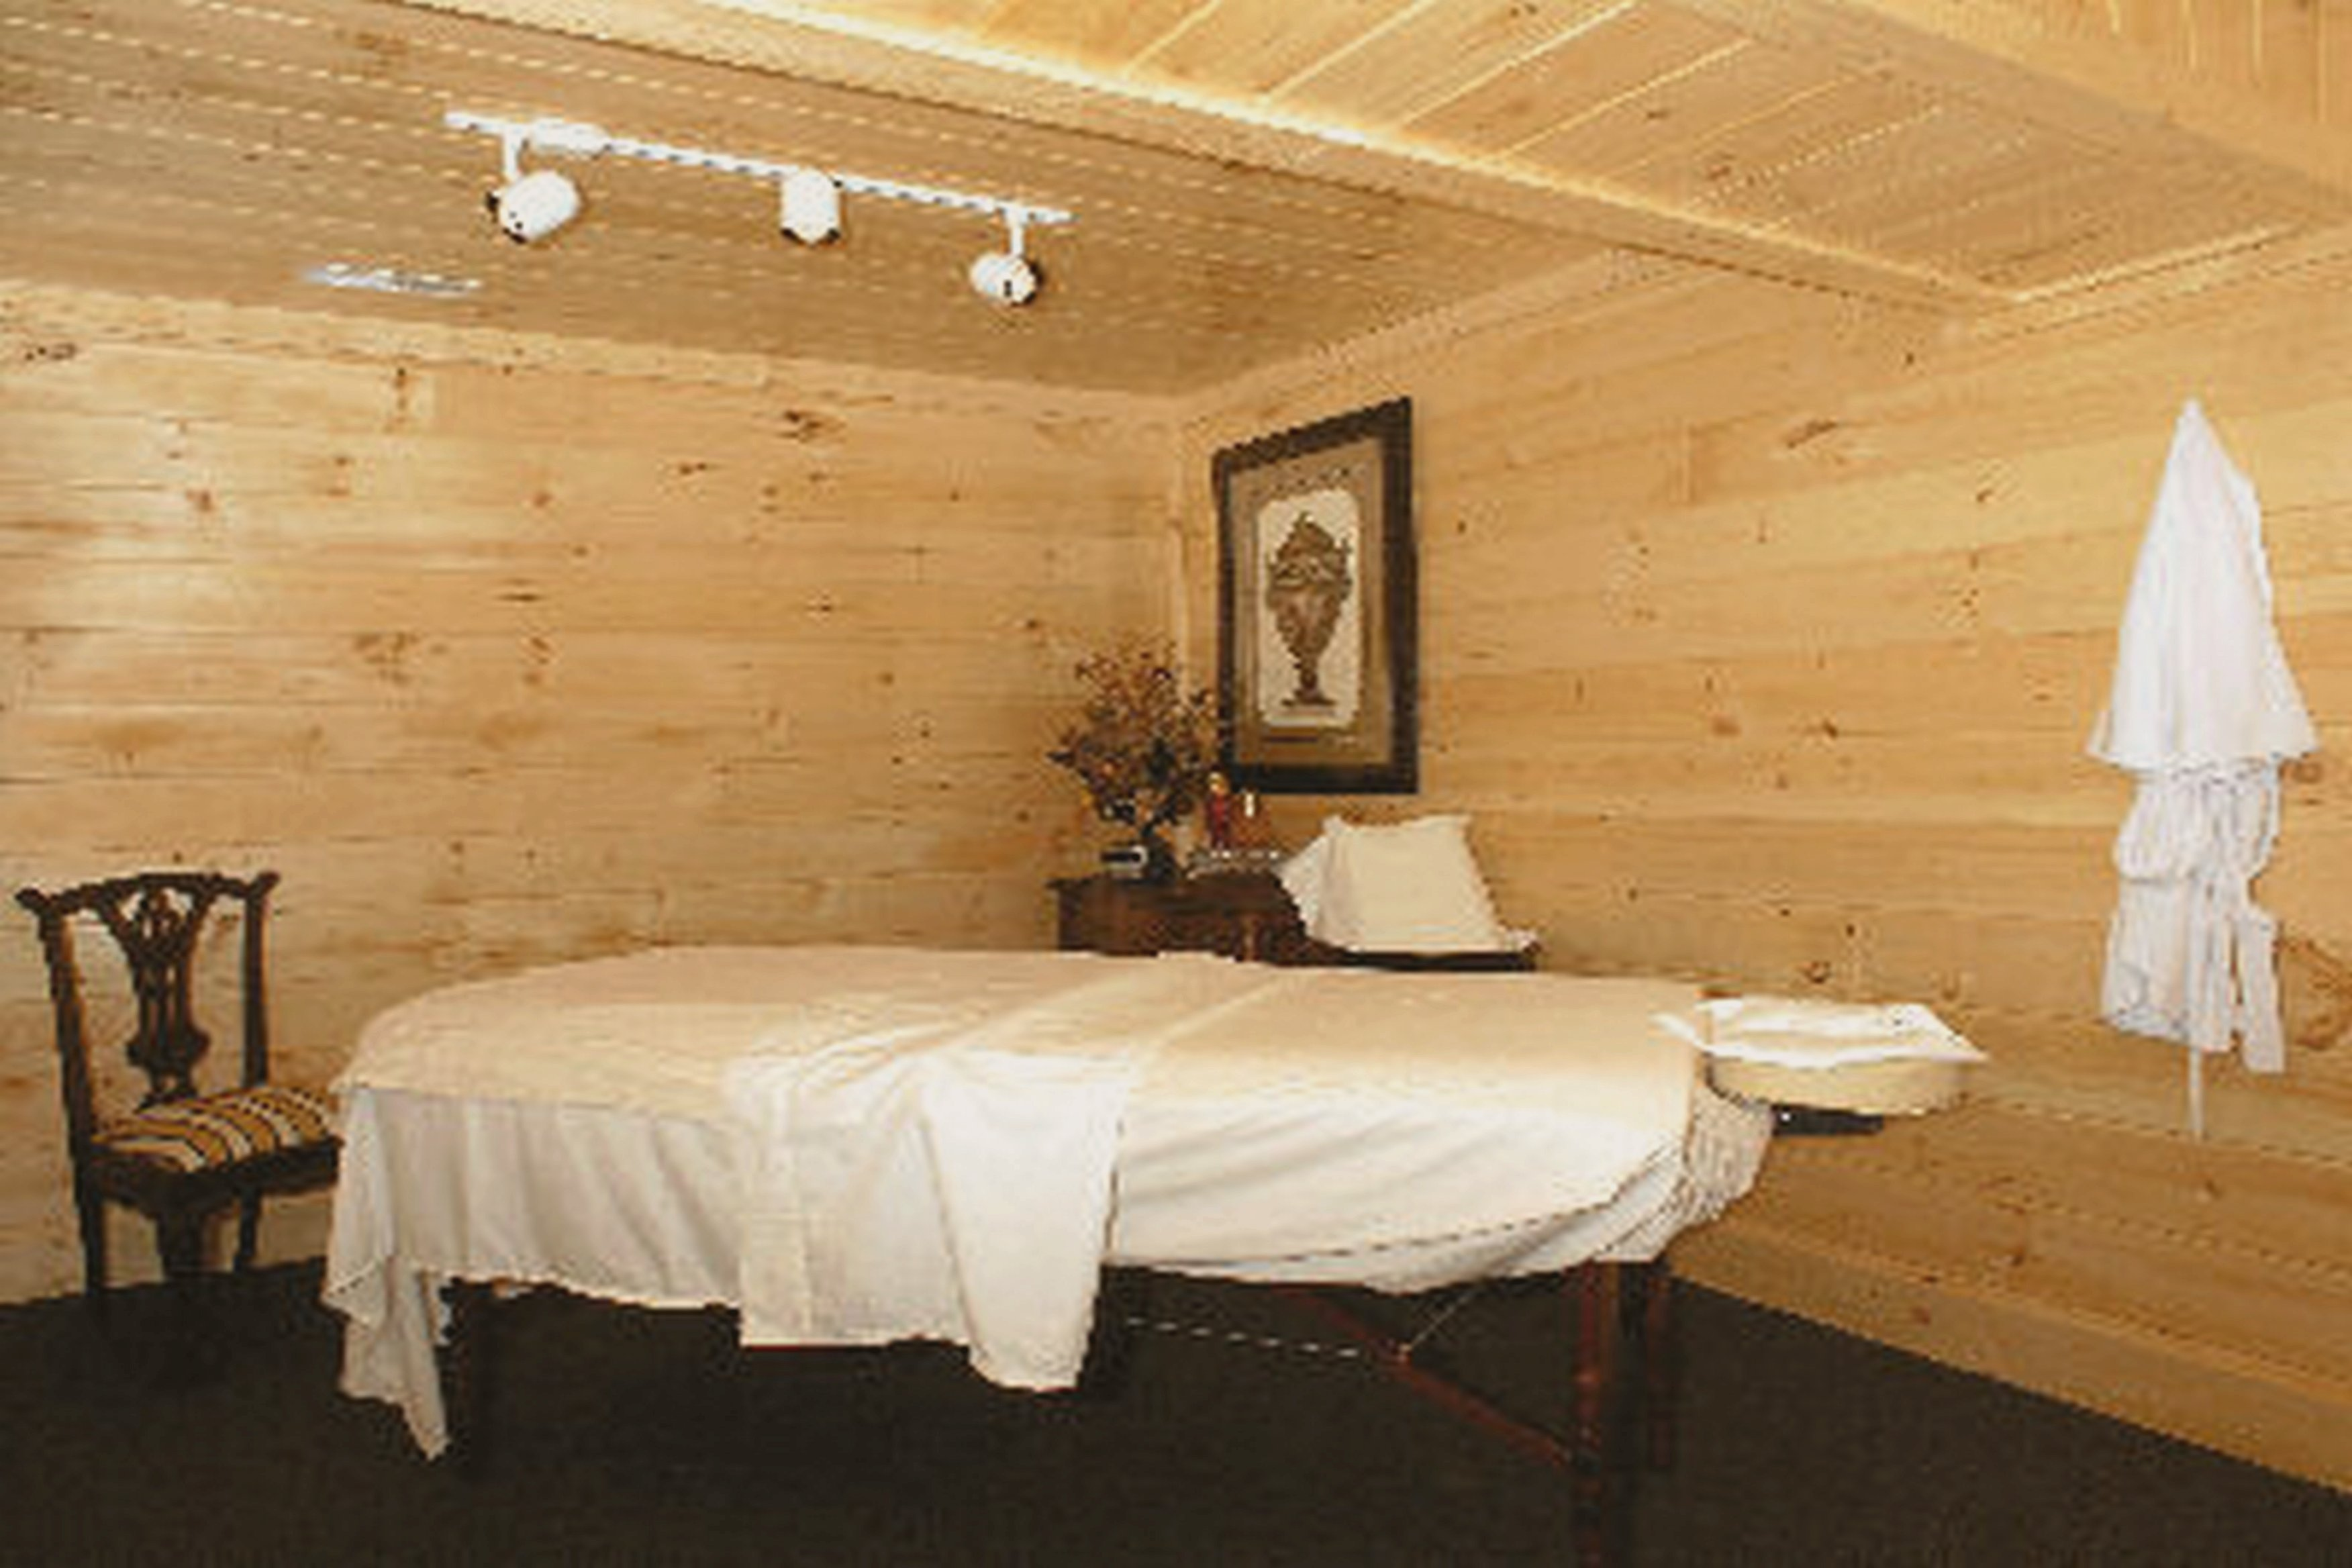 eagle minut s tn cabin with pigeon nest near cabins views forge vacation homeaway luxury rental